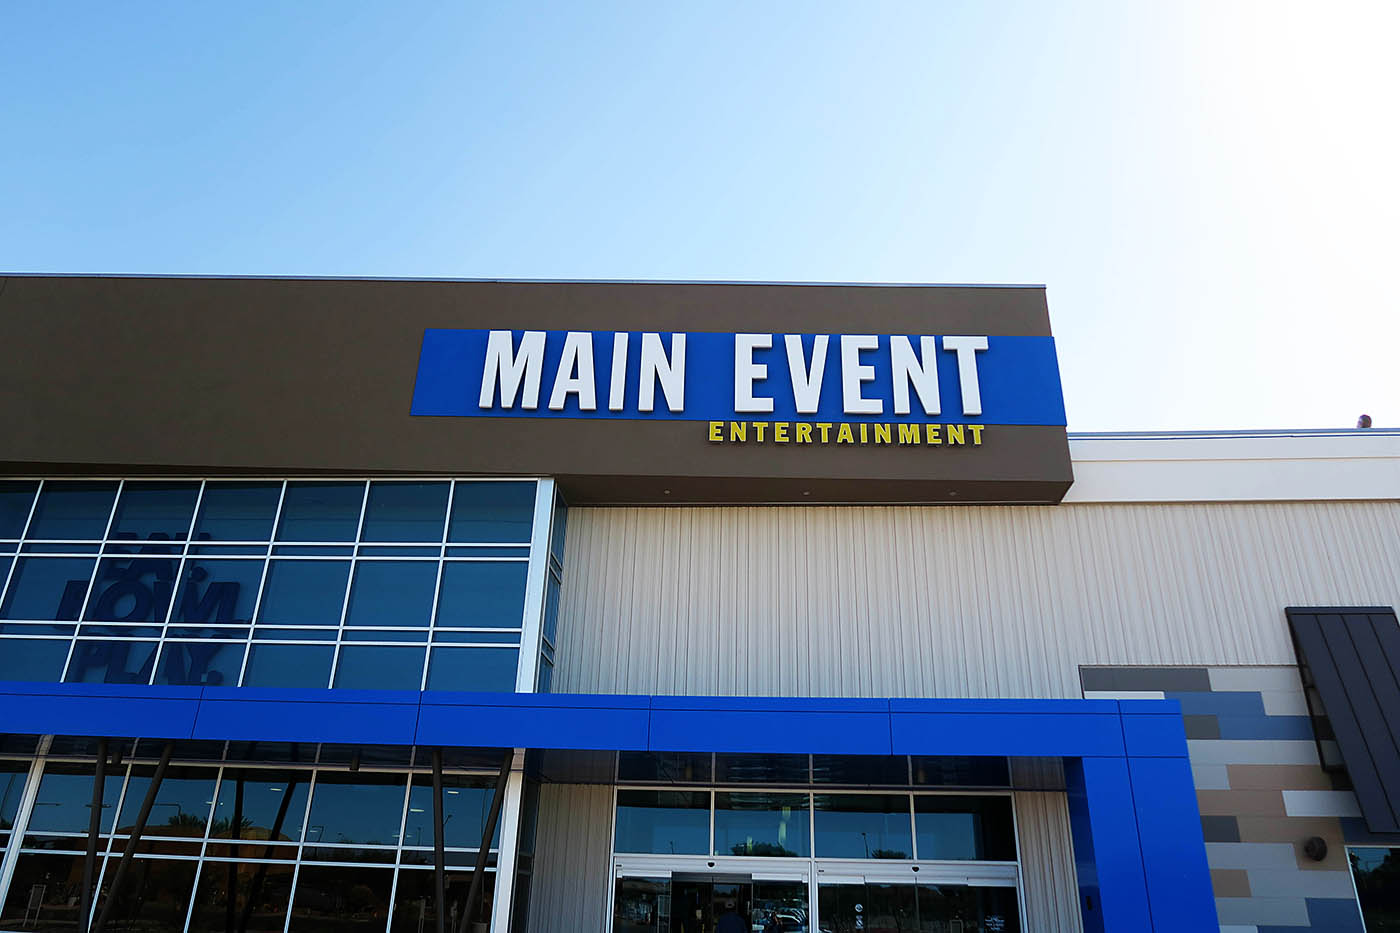 Main Event for family fun